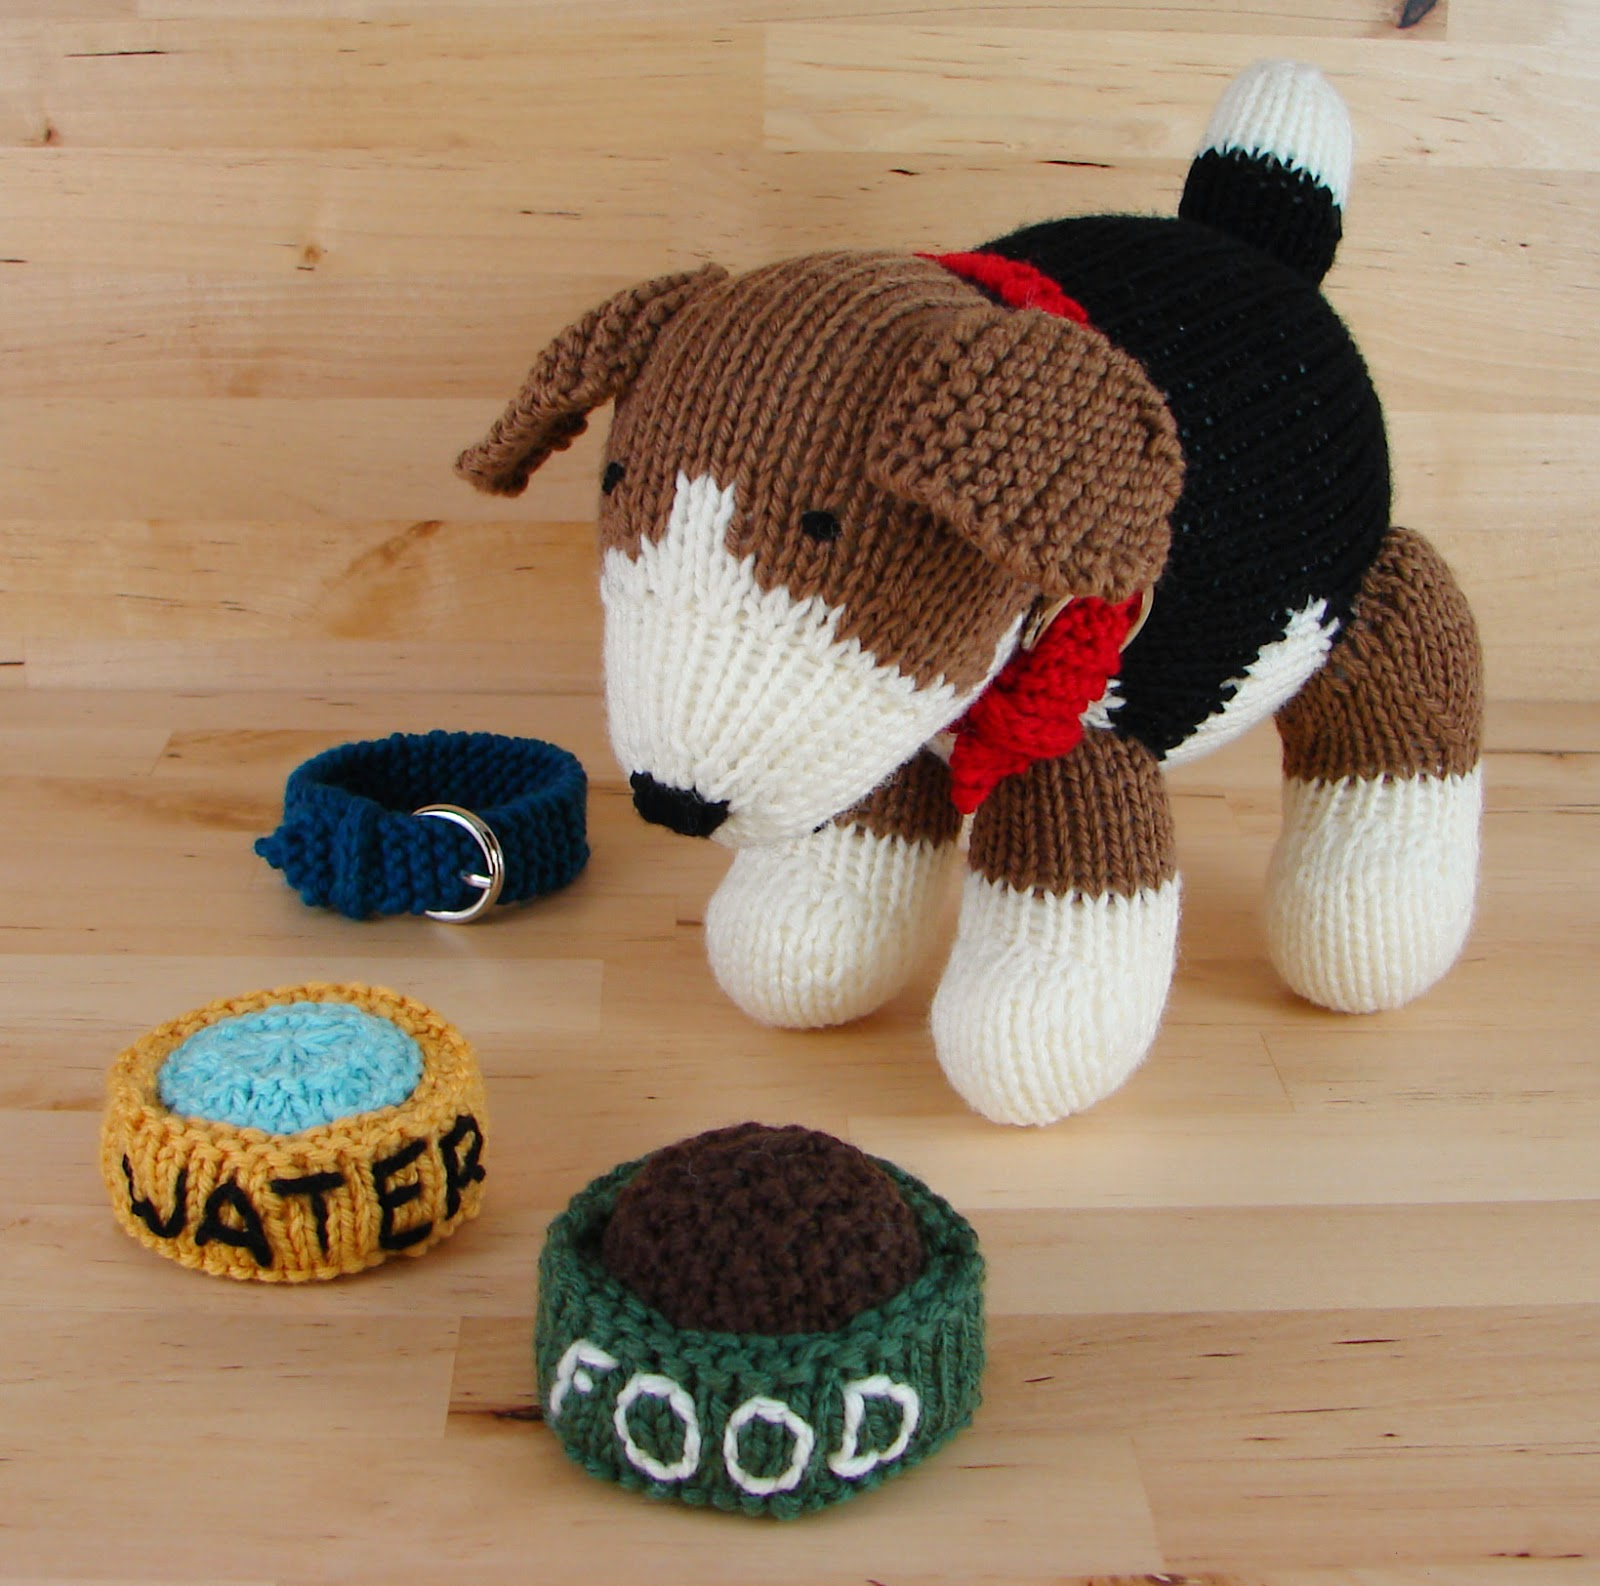 knit beagle dog toy stuffed food water dishes pattern